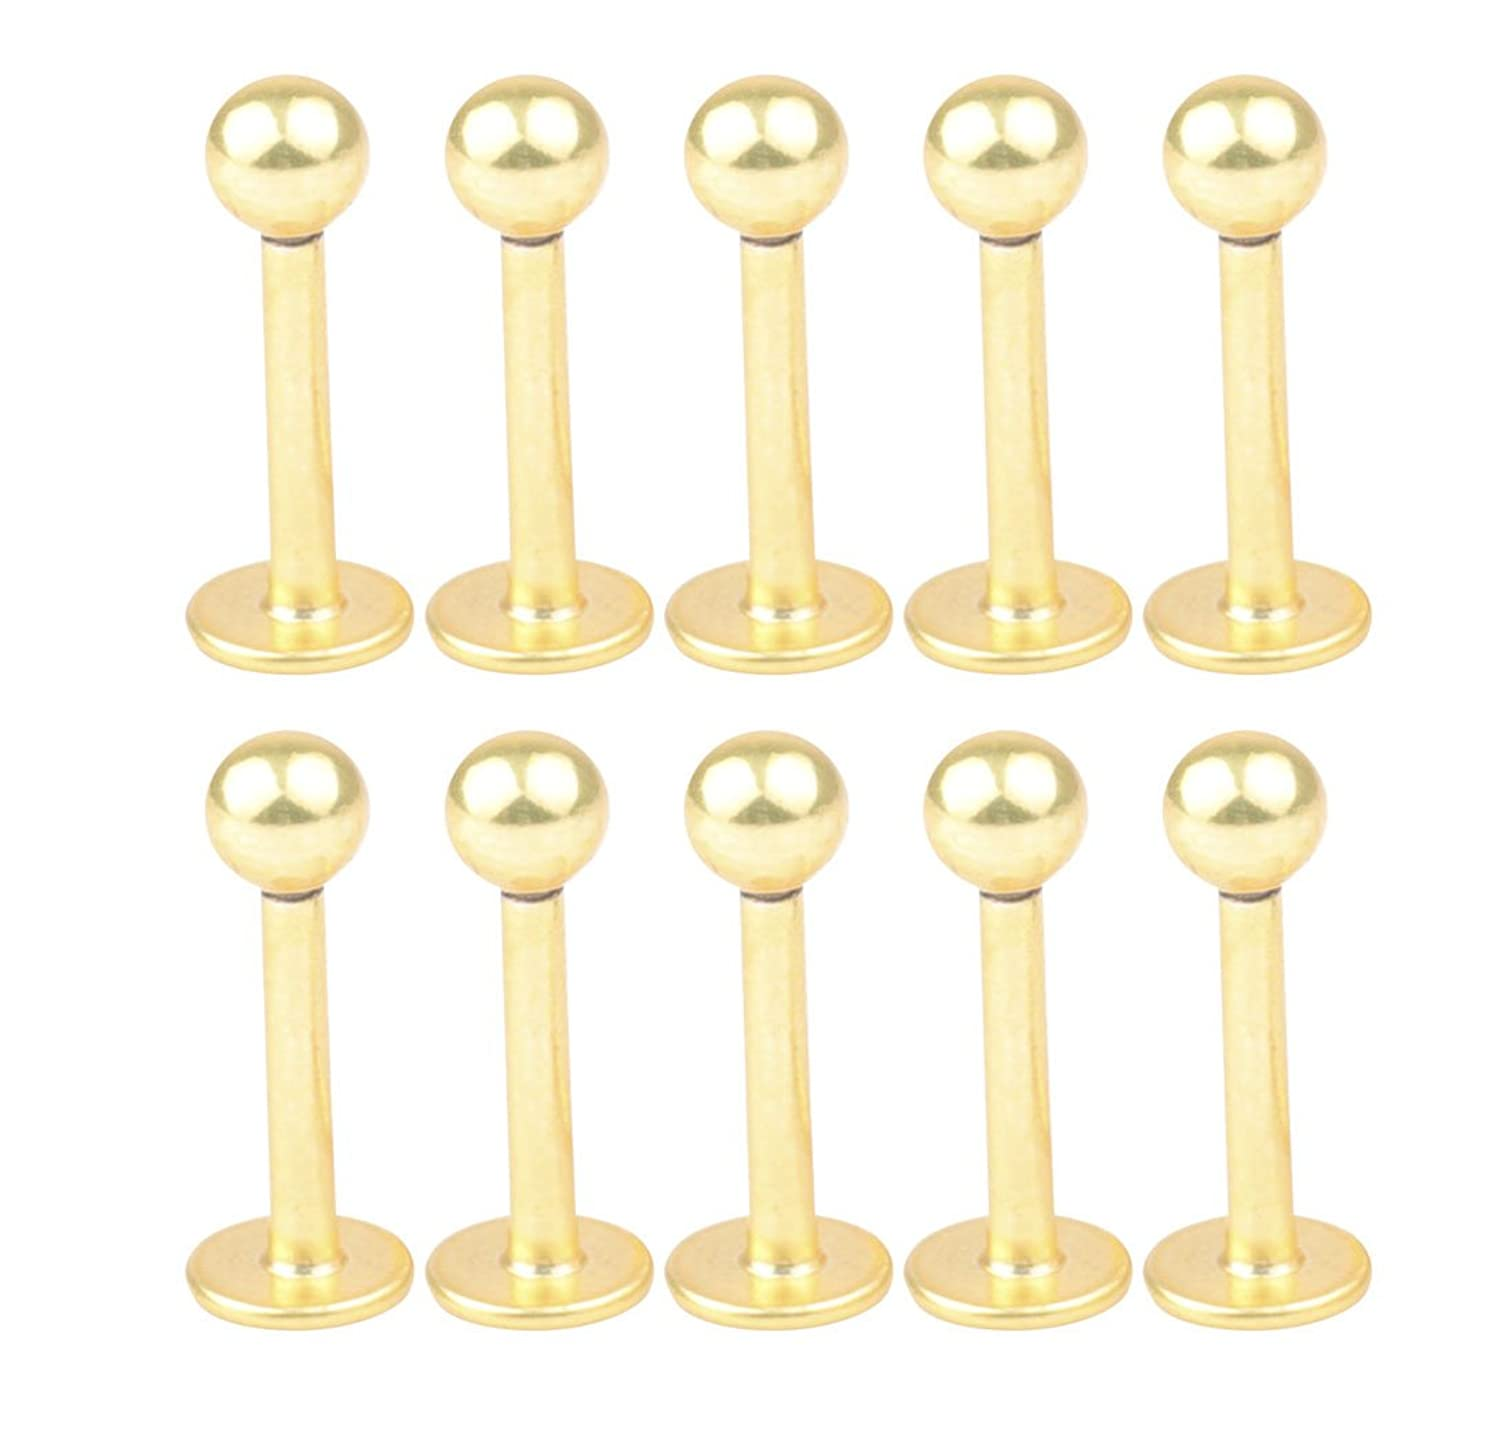 10PCS 16G 8mm Stainless Steel 3mm Ball Labret Monroe Lip Ring/ Tragus/ Helix Earring Stud Barbell Body Piercing Jewelry Surgical Steel